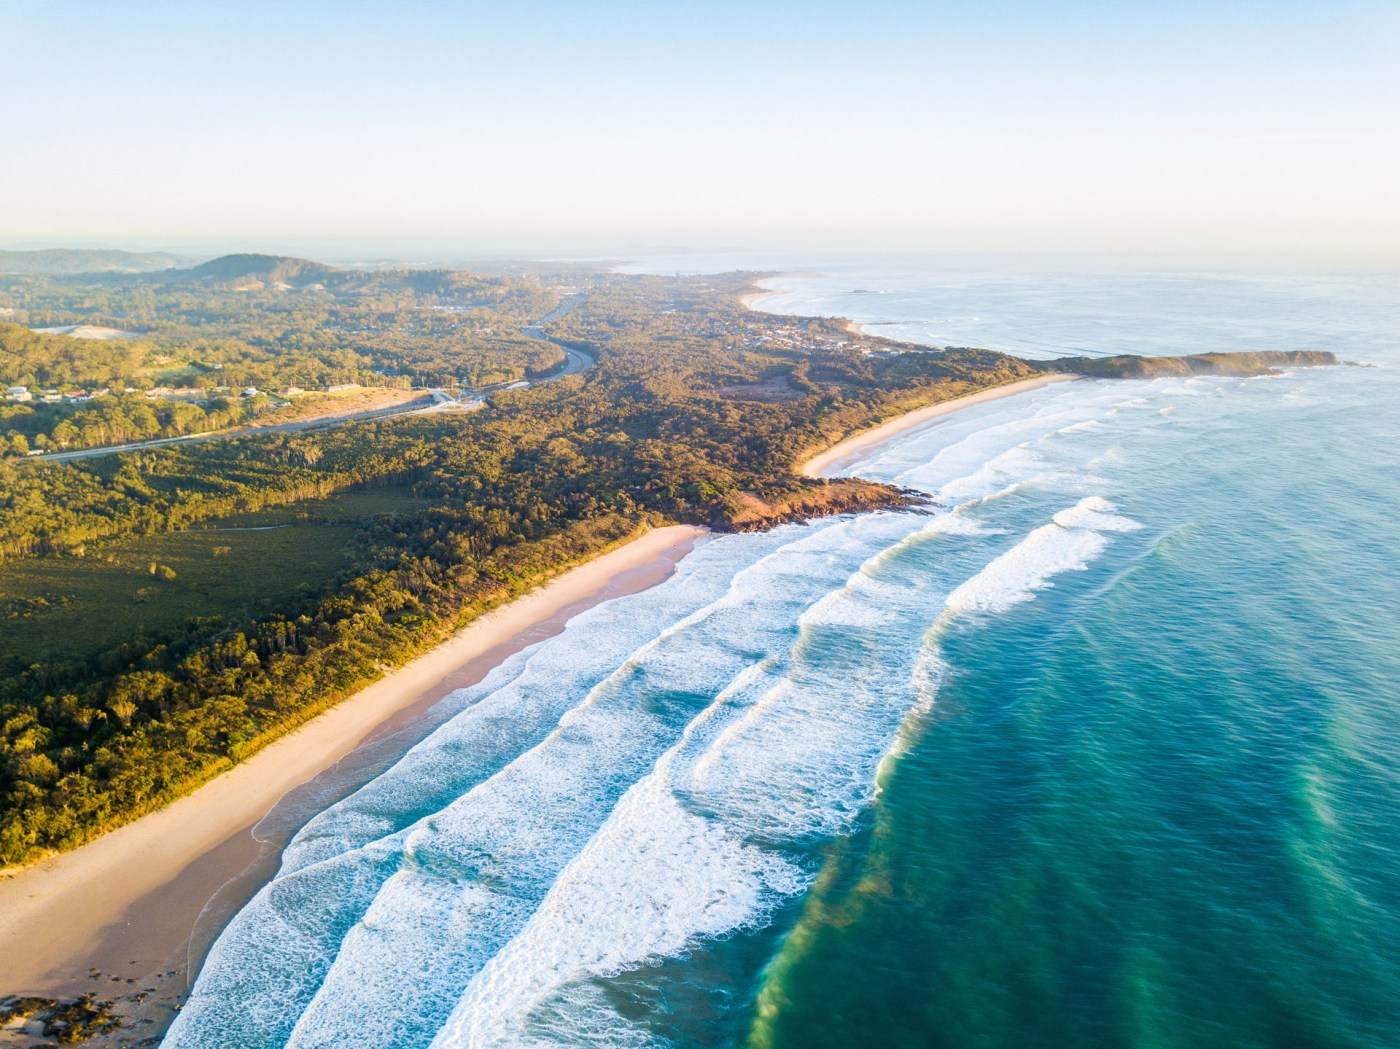 Emerald Beach Aerial - Franzi Photography